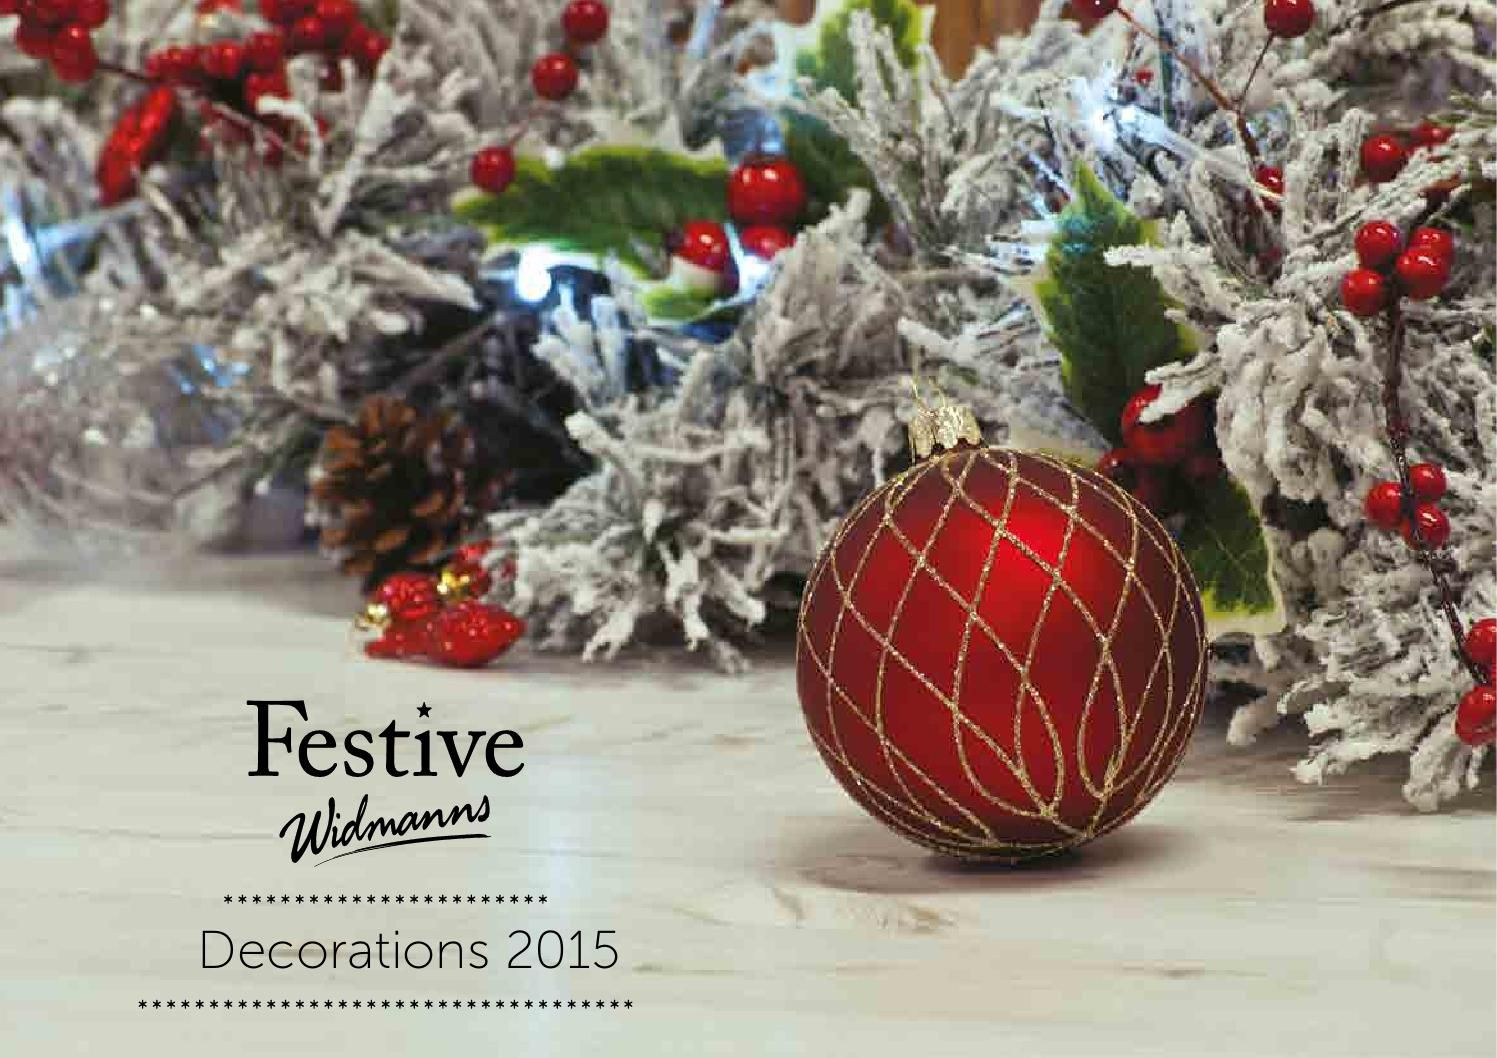 wholesale christmas decorations catalogue from festive httpwwwfestive - Wholesale Christmas Decorations